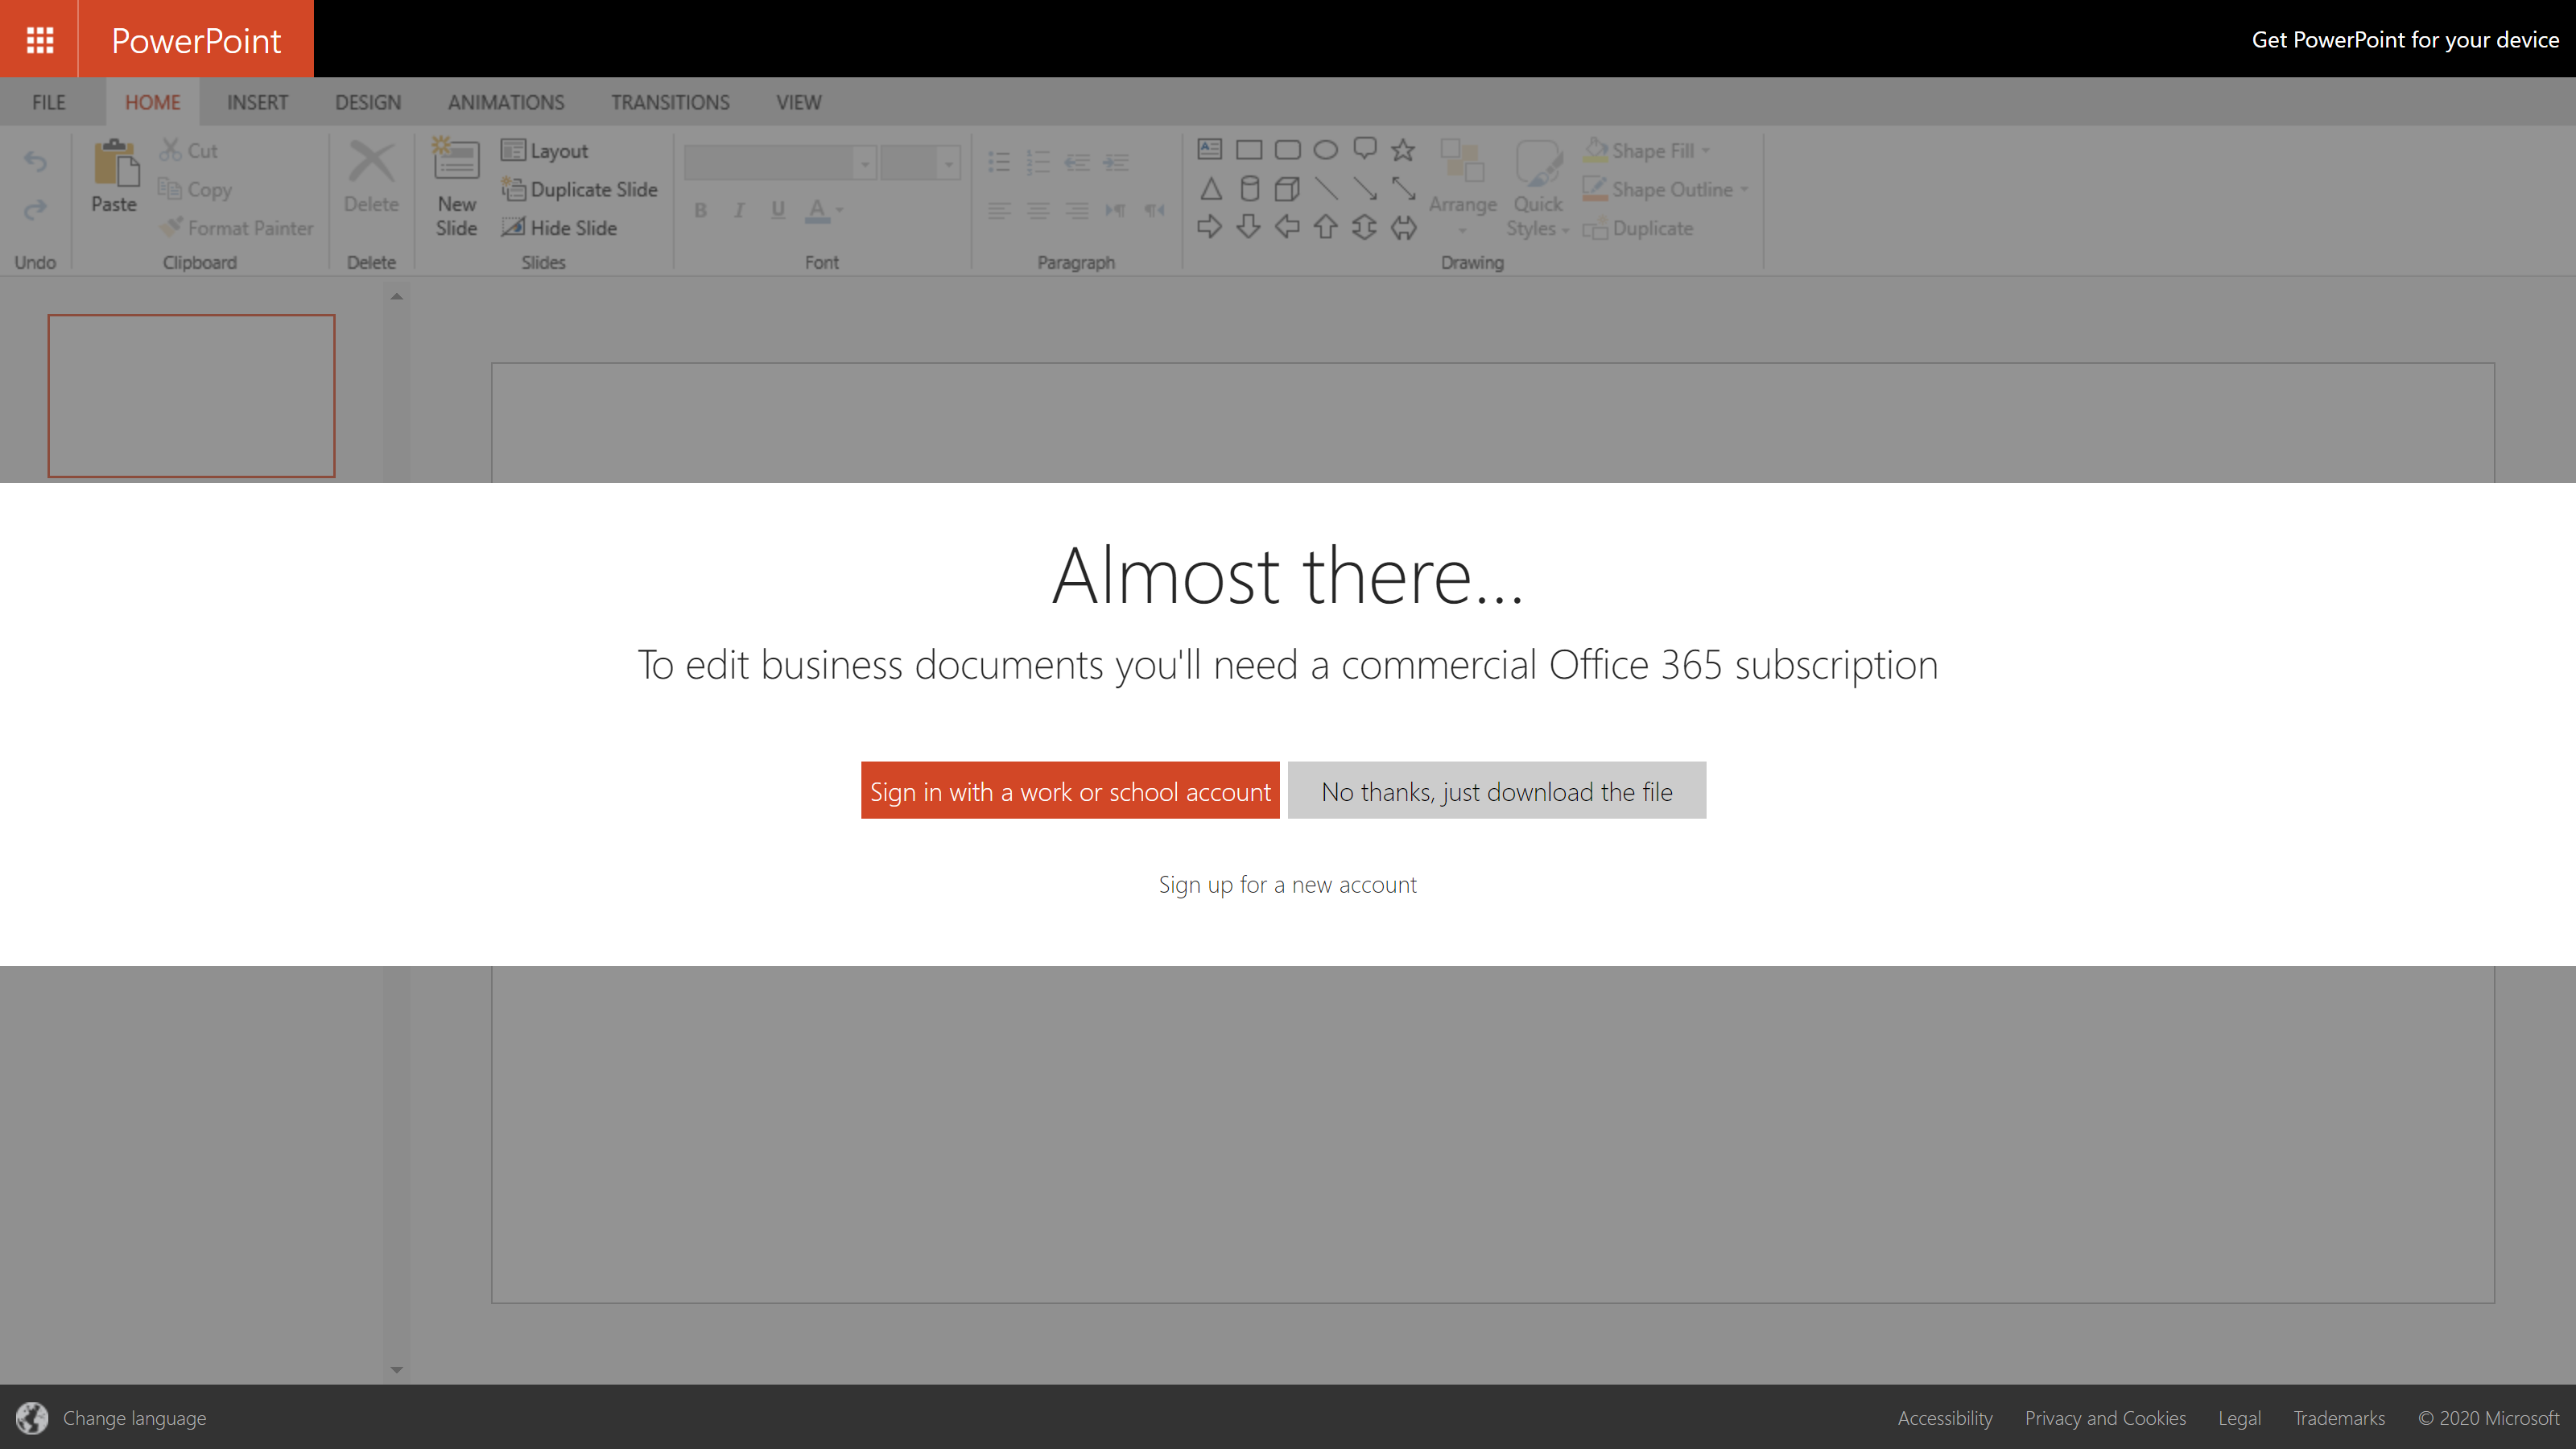 screenshot no need to sign in to view microsoft documents